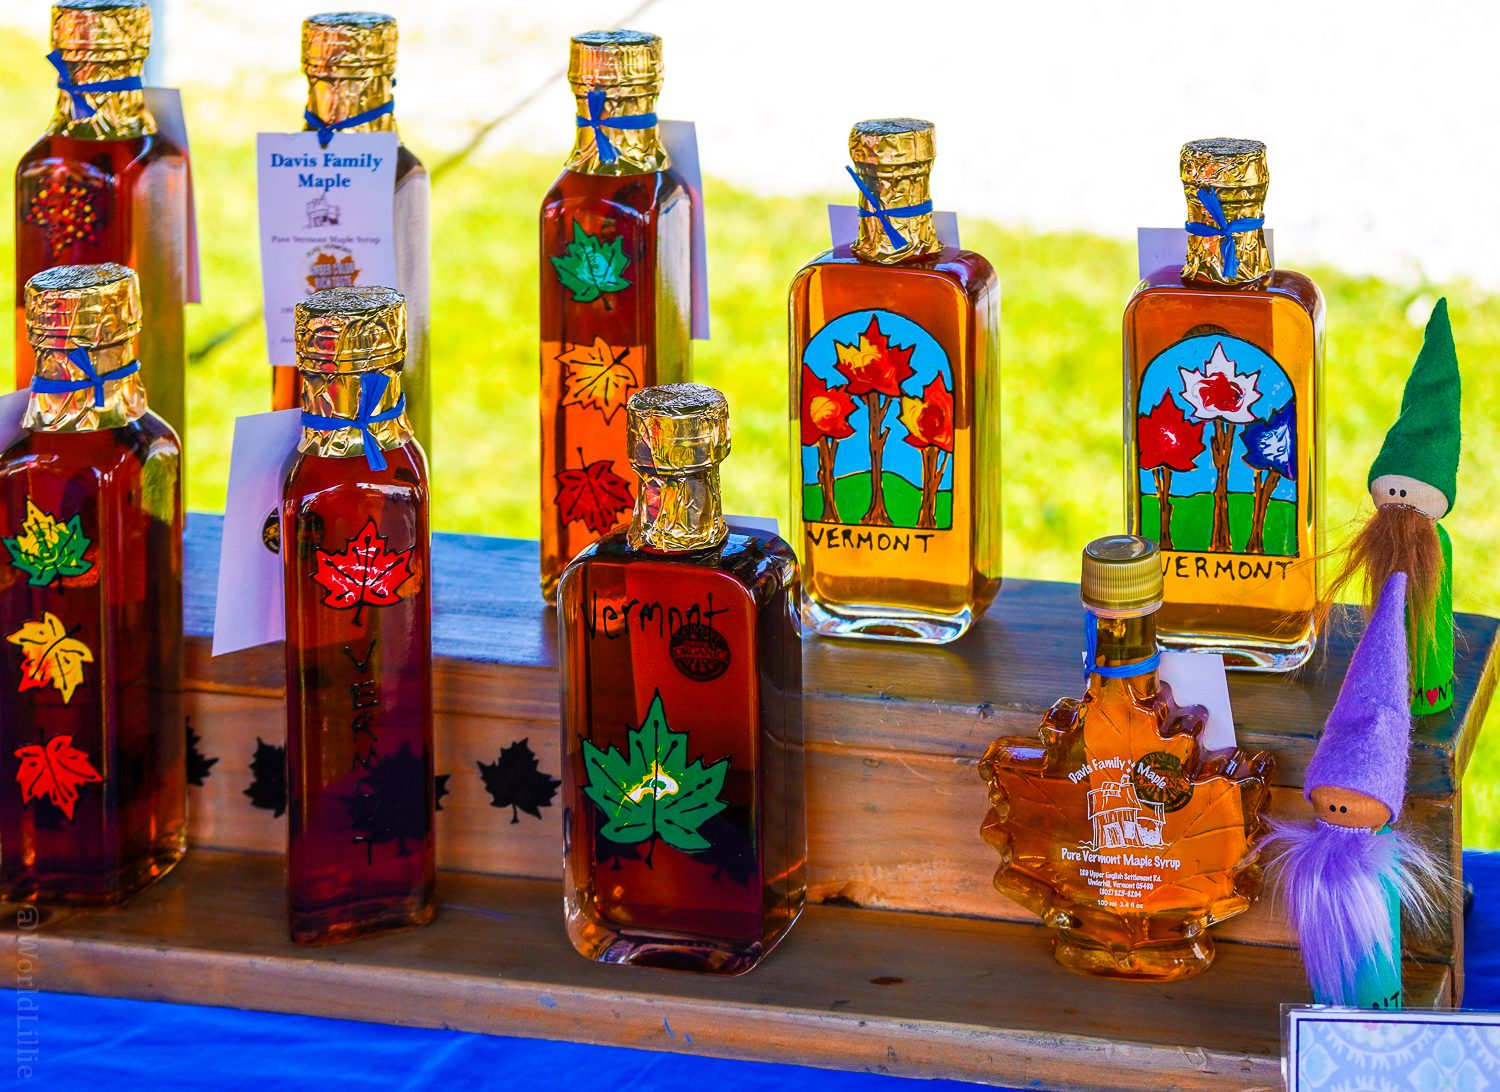 VT maple syrup at the Vermont Country Fair.